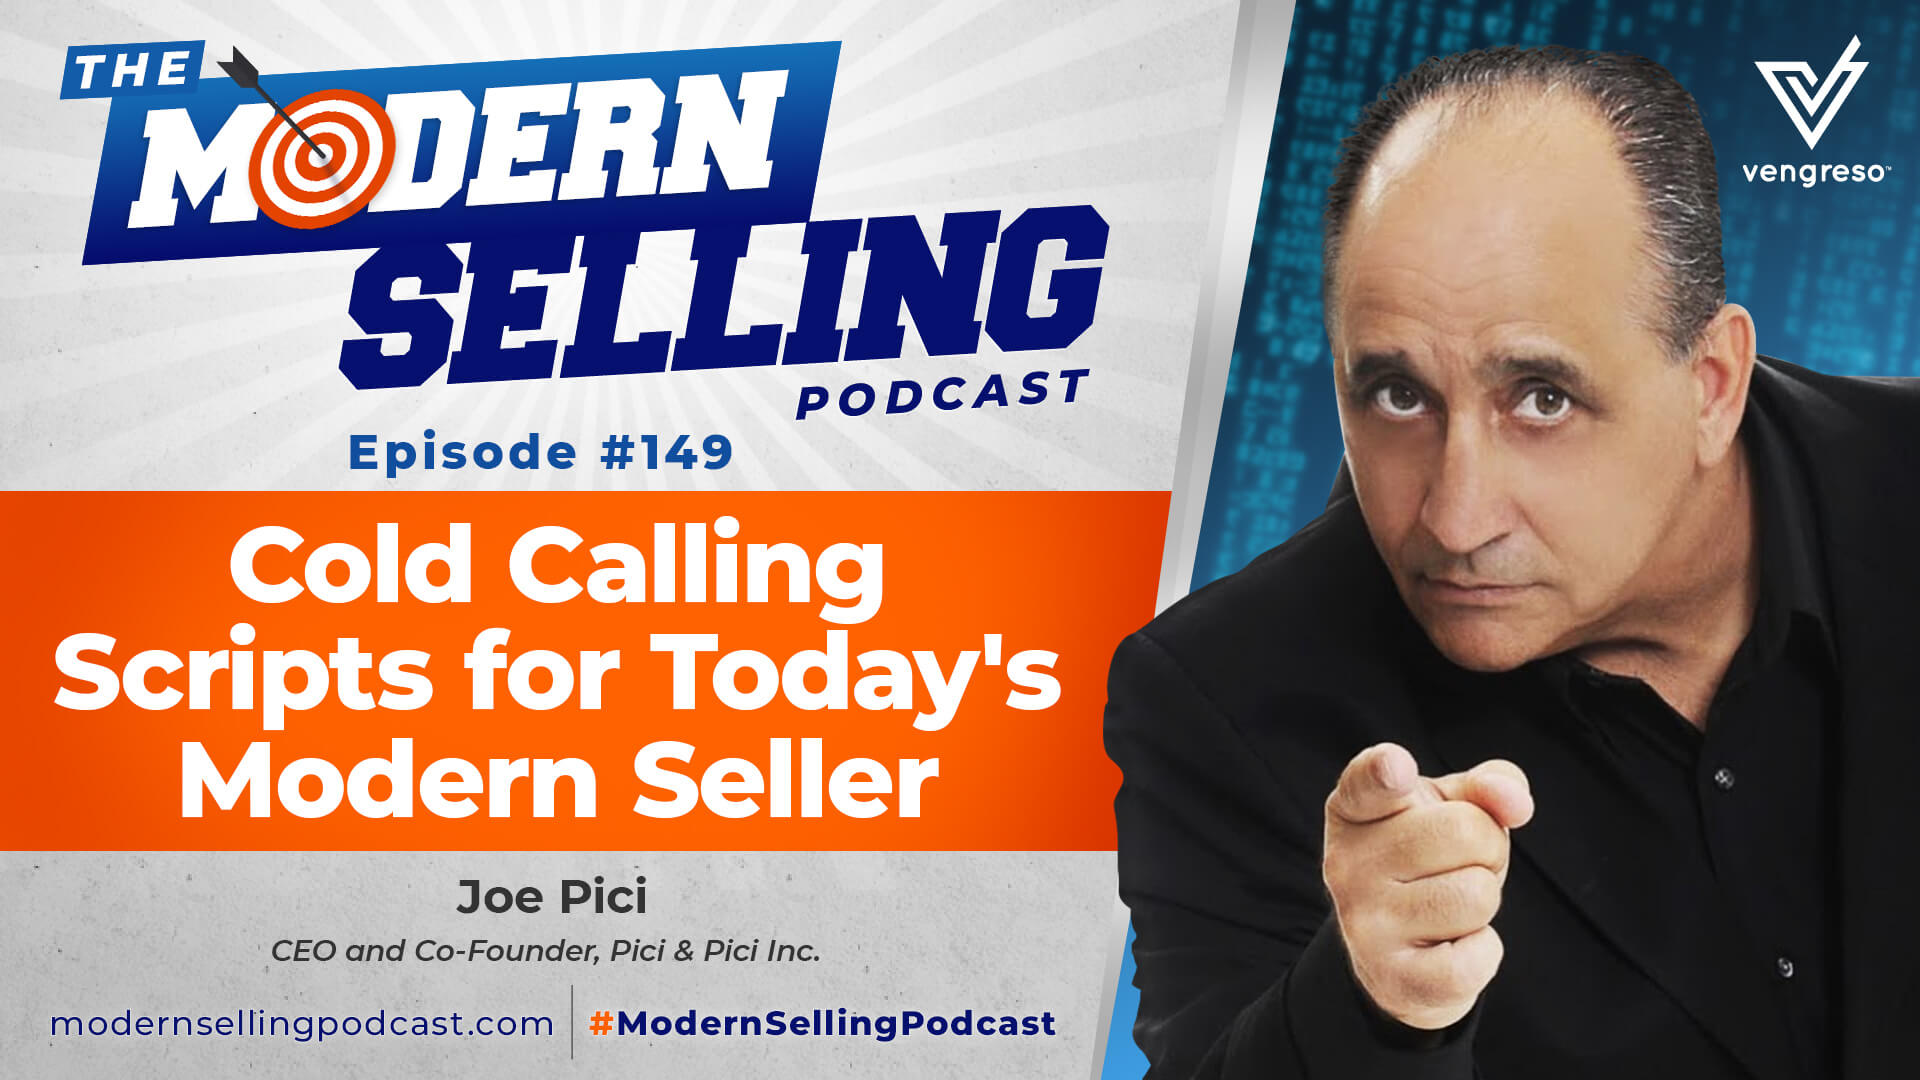 Cold Calling Scripts for Today's Modern Seller with Joe Pici